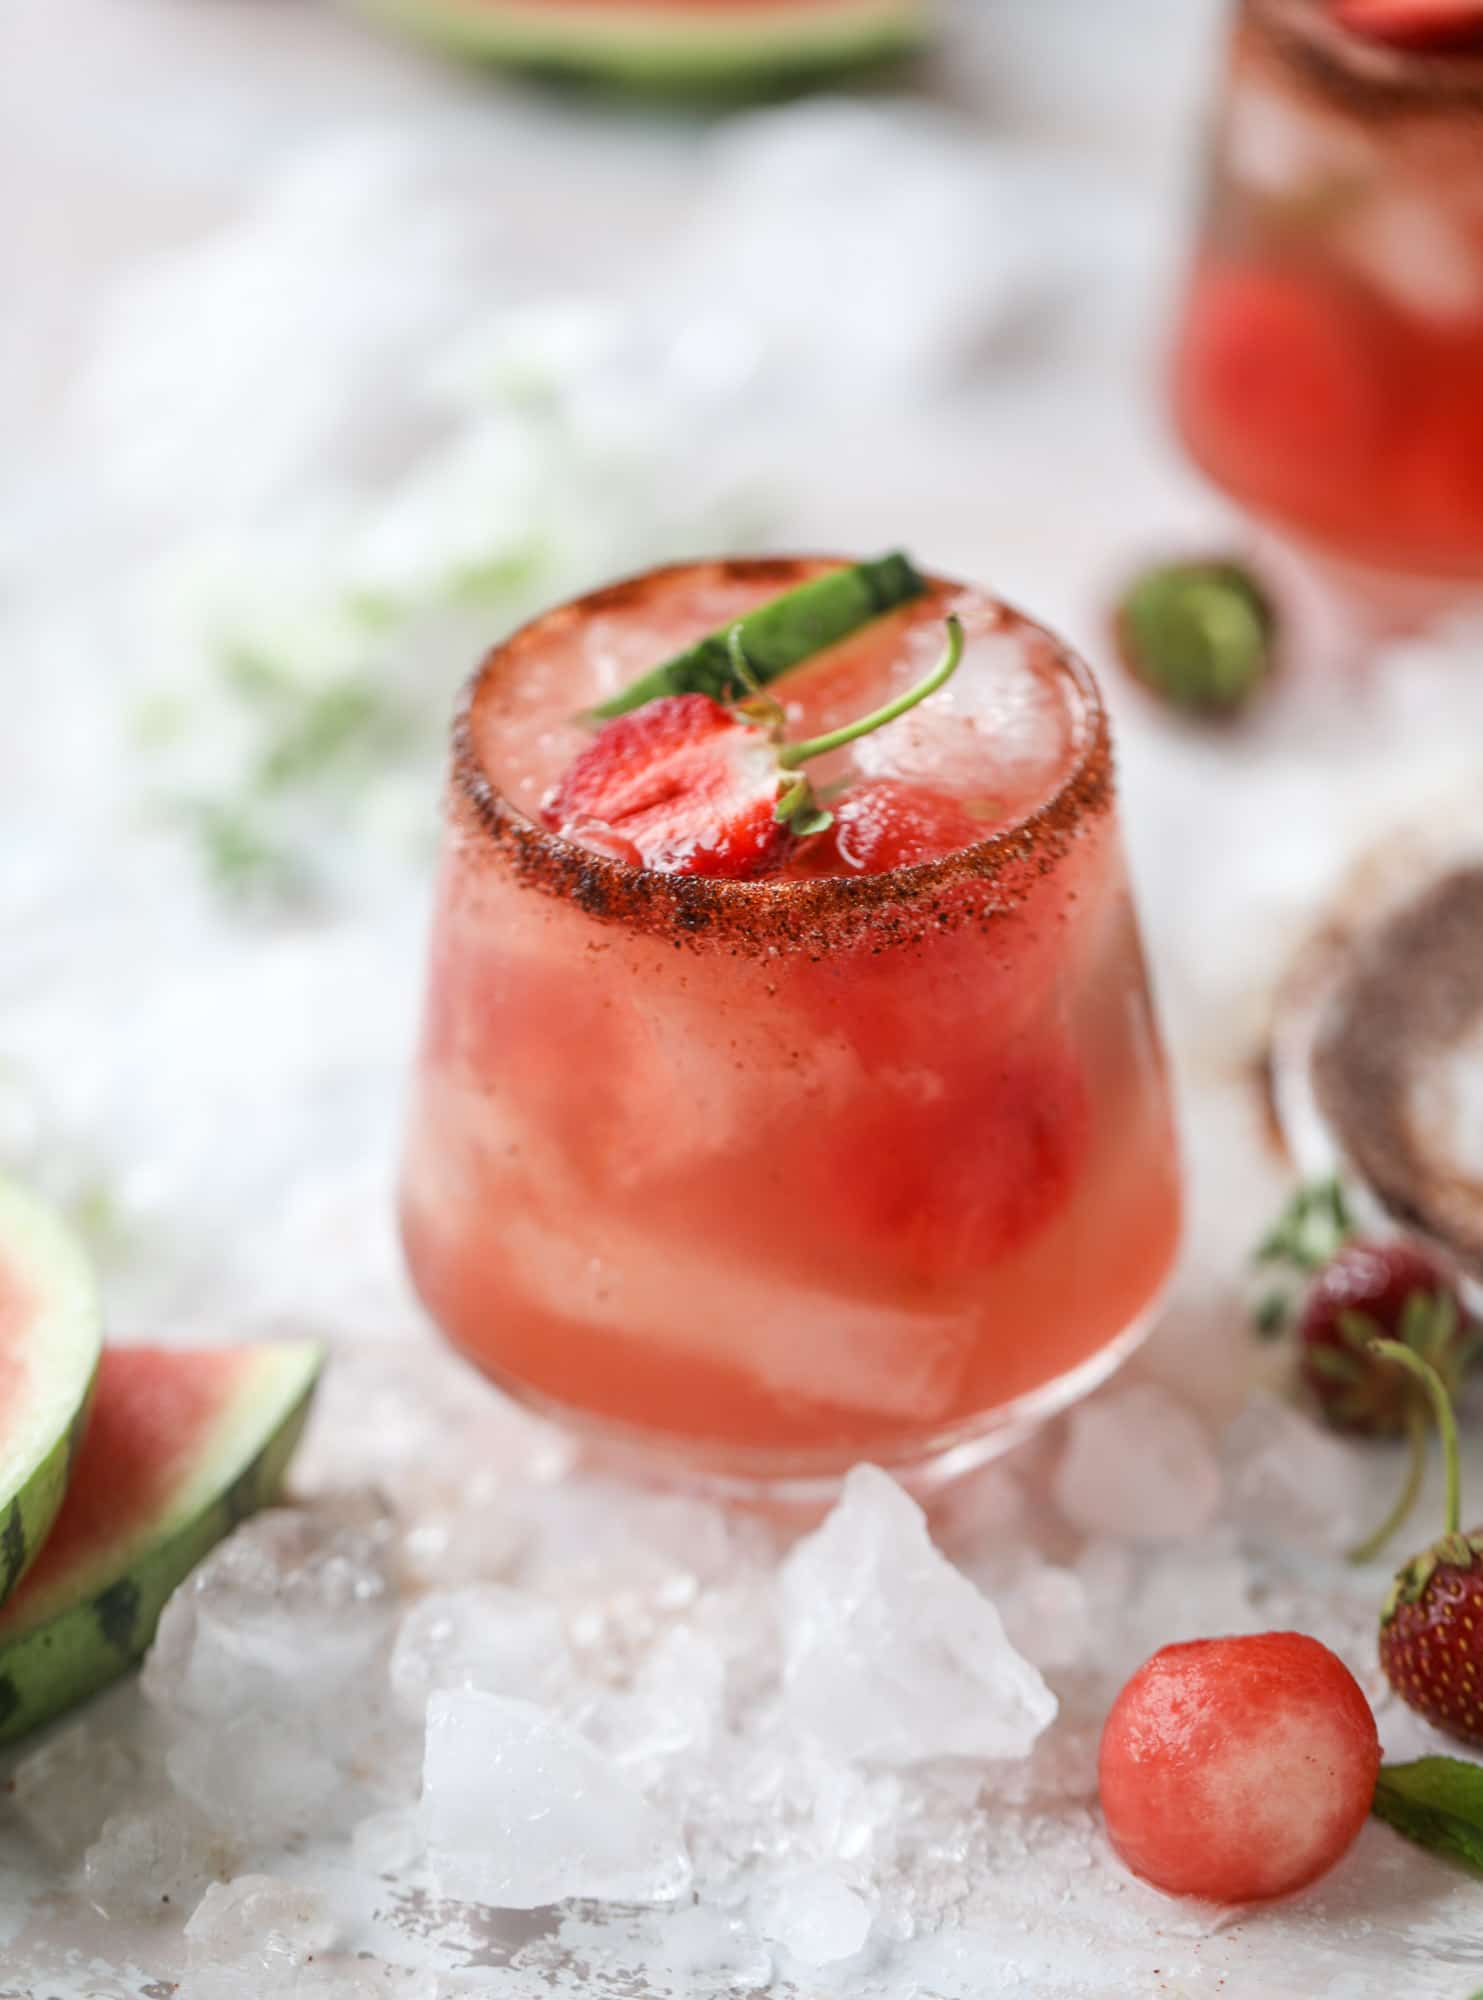 This spicy watermelon sangria is super refreshing, light, delicious and perfect for a hot summer day! Complete with an entire bottle of rosé, watermelon juice, melon balls, strawberries and brandy, this is the best summer cocktail in a pitcher! I howsweeteats.com #spicy #watermelon #sangria #cocktails #rosé